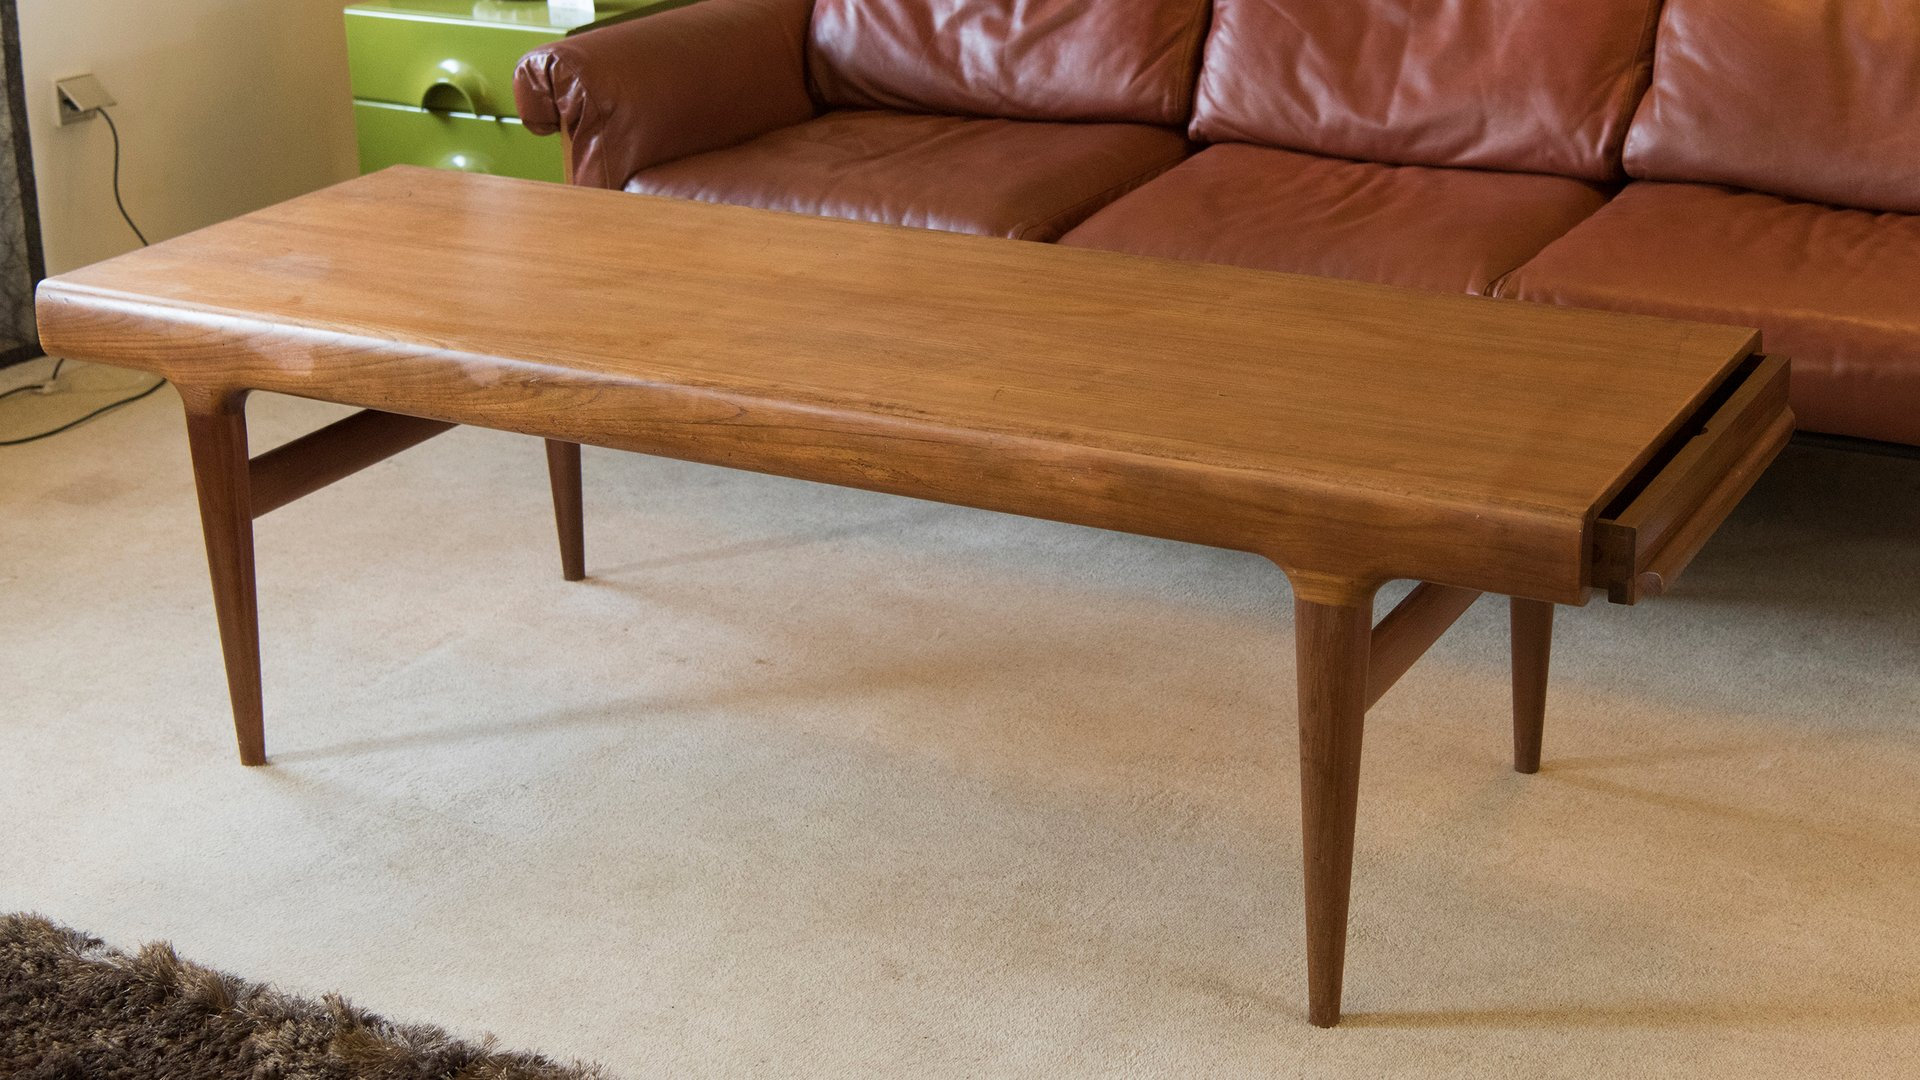 Mid Century Extendable Coffee Table By Johannes Andersen For Silkeborg Møbelfabrik